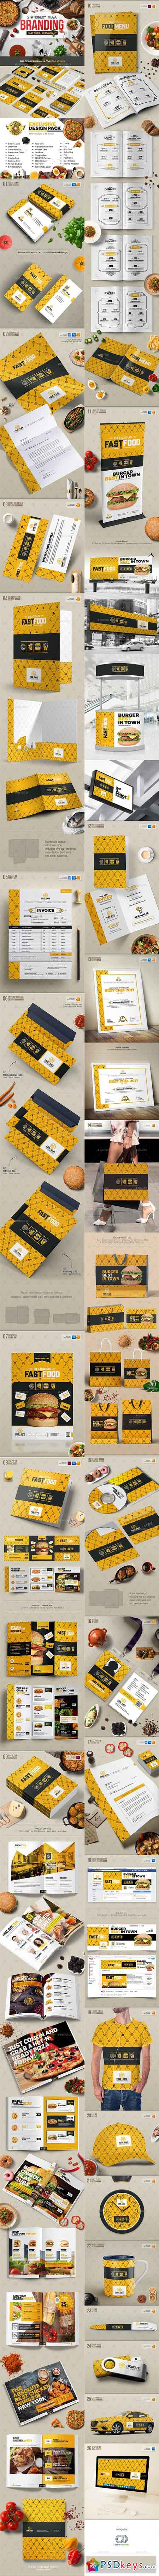 Branding Identity for Fast Food Restaurants Cafe 20193465